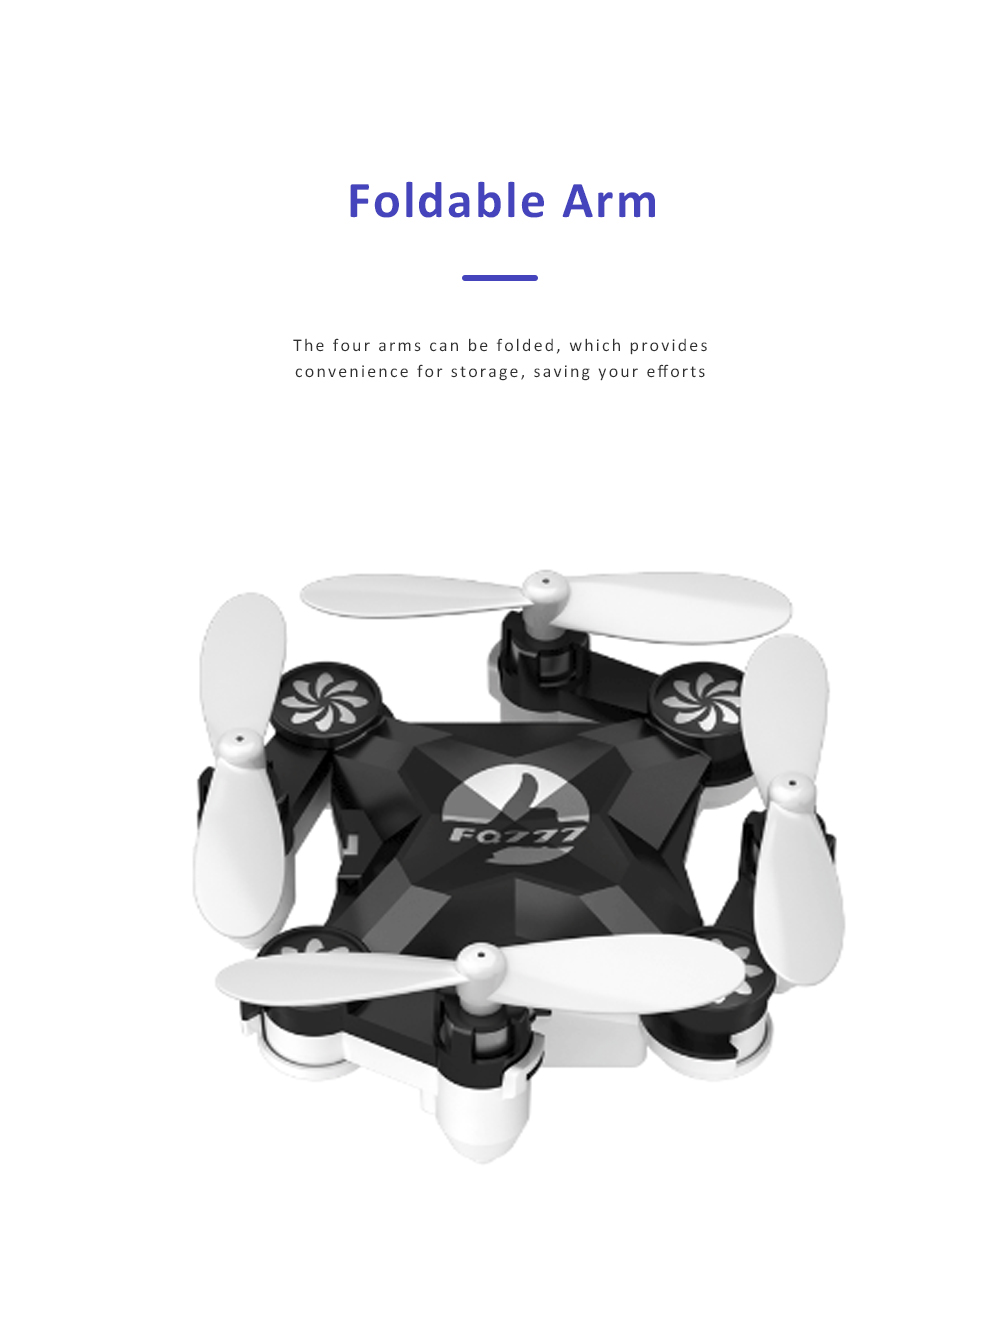 Unmanned Aerial Vehicle Mini Remote Control Foldable Quadcopter Portable 6 Axis Flying Toy 5